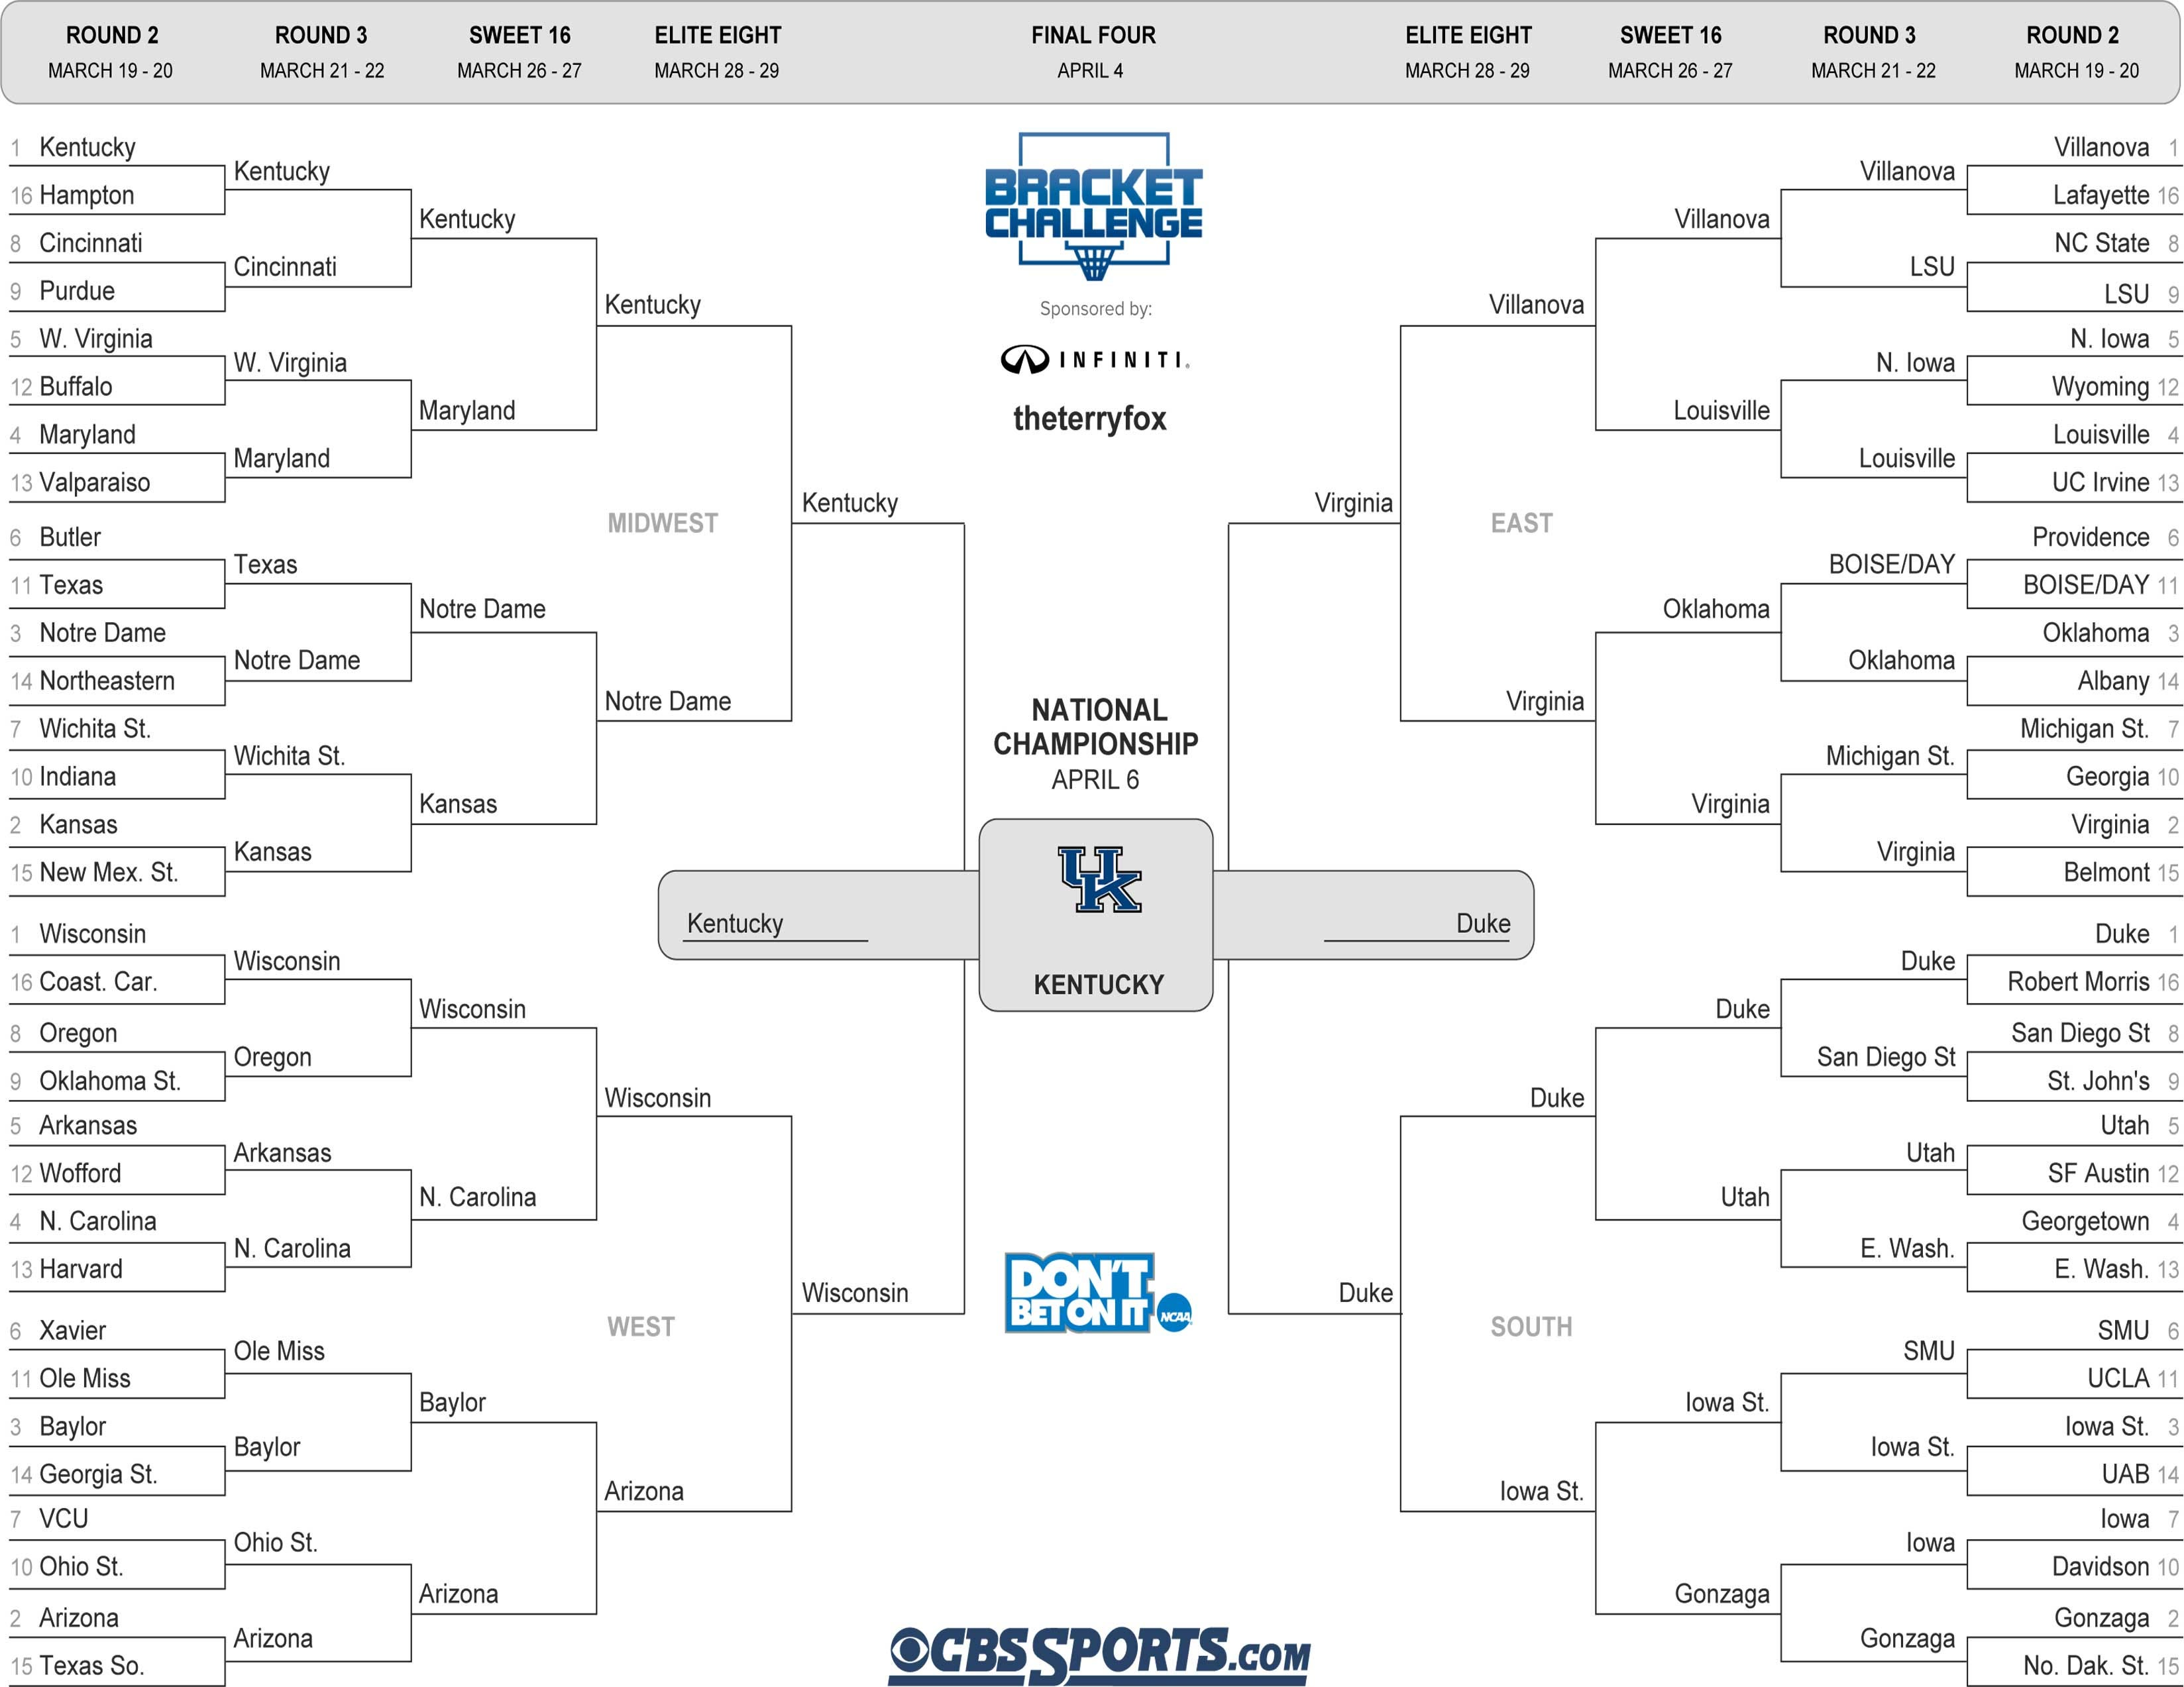 Compare Your Bracket To The News 9 Sports Team's